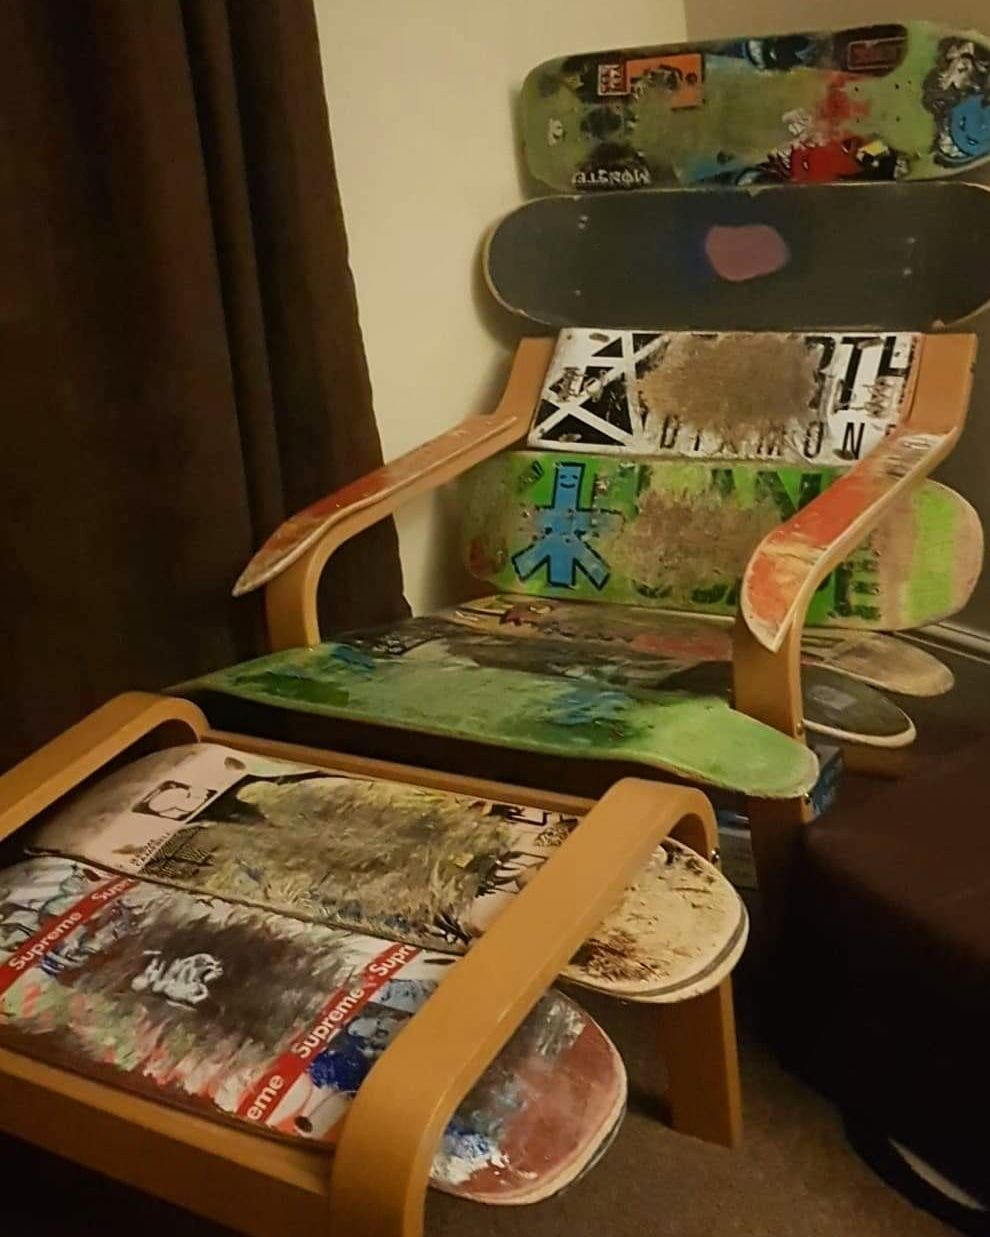 I Made A Chair Out Of Old Skateboards Https Ift Tt 2rcbj1c Chair Cute Diy Projects Diy Projects